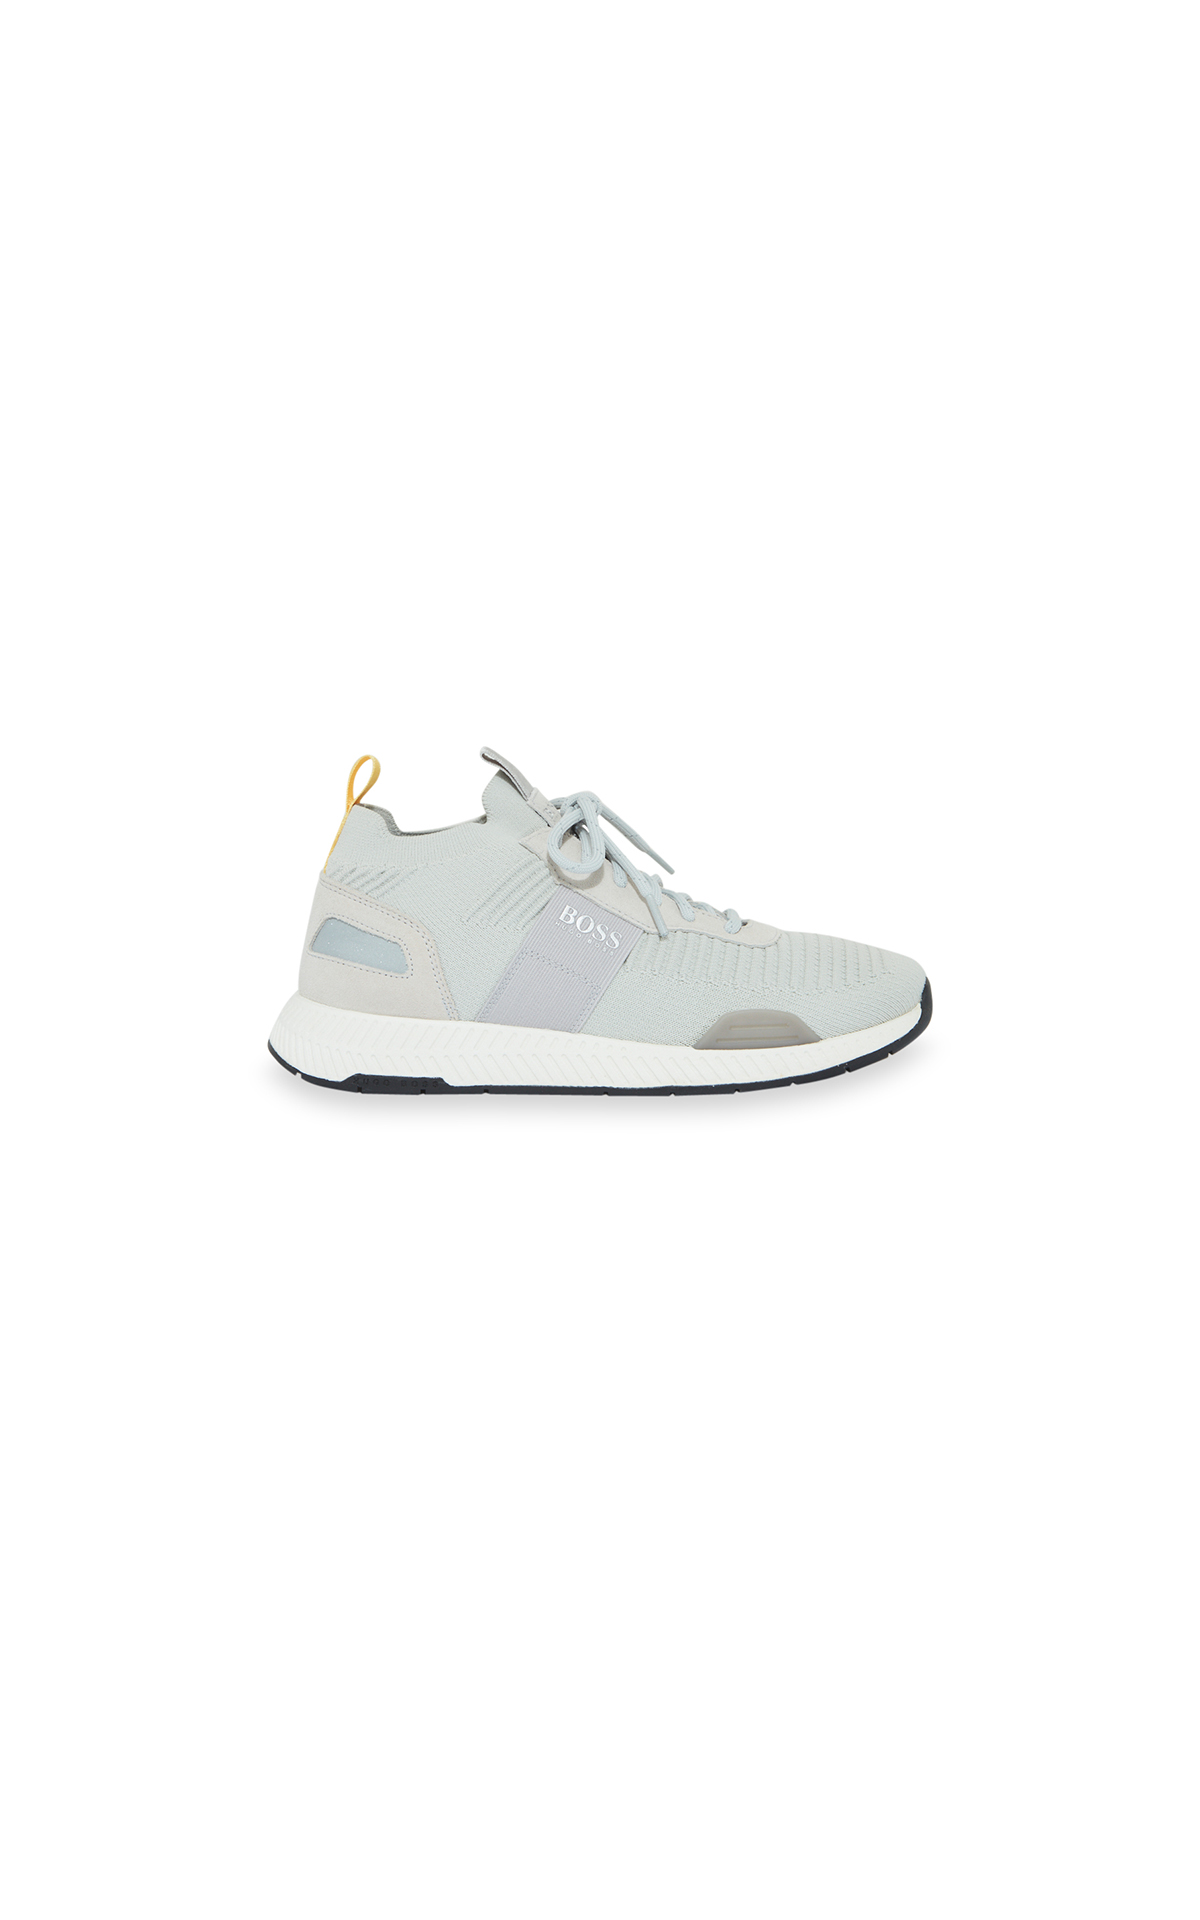 la vallée village Hugo Boss Baskets running Titanium beige clair